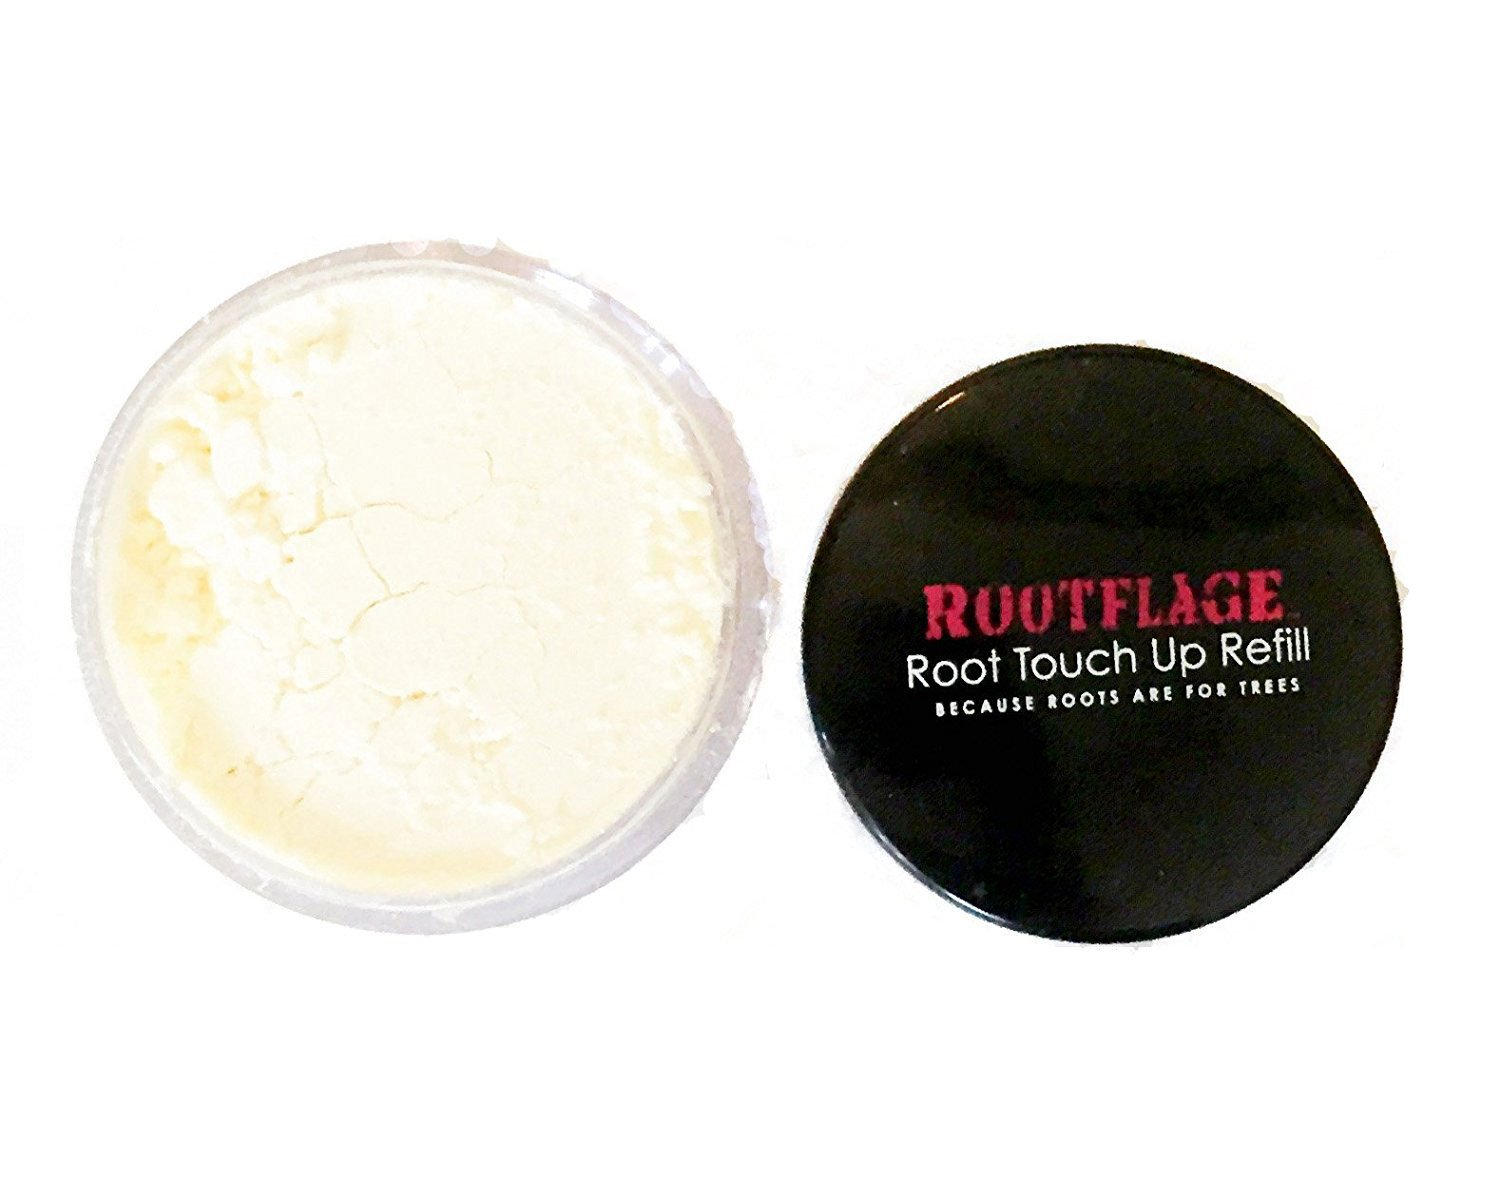 Rootflage Instant Blonde Root Touch Up Hair Powder - Temporary Hair Color, Root Concealer, Thinning Hair Powder and Concealer Refill Jar with Detail Brush Included (02 Light Blonde) by Rootflage